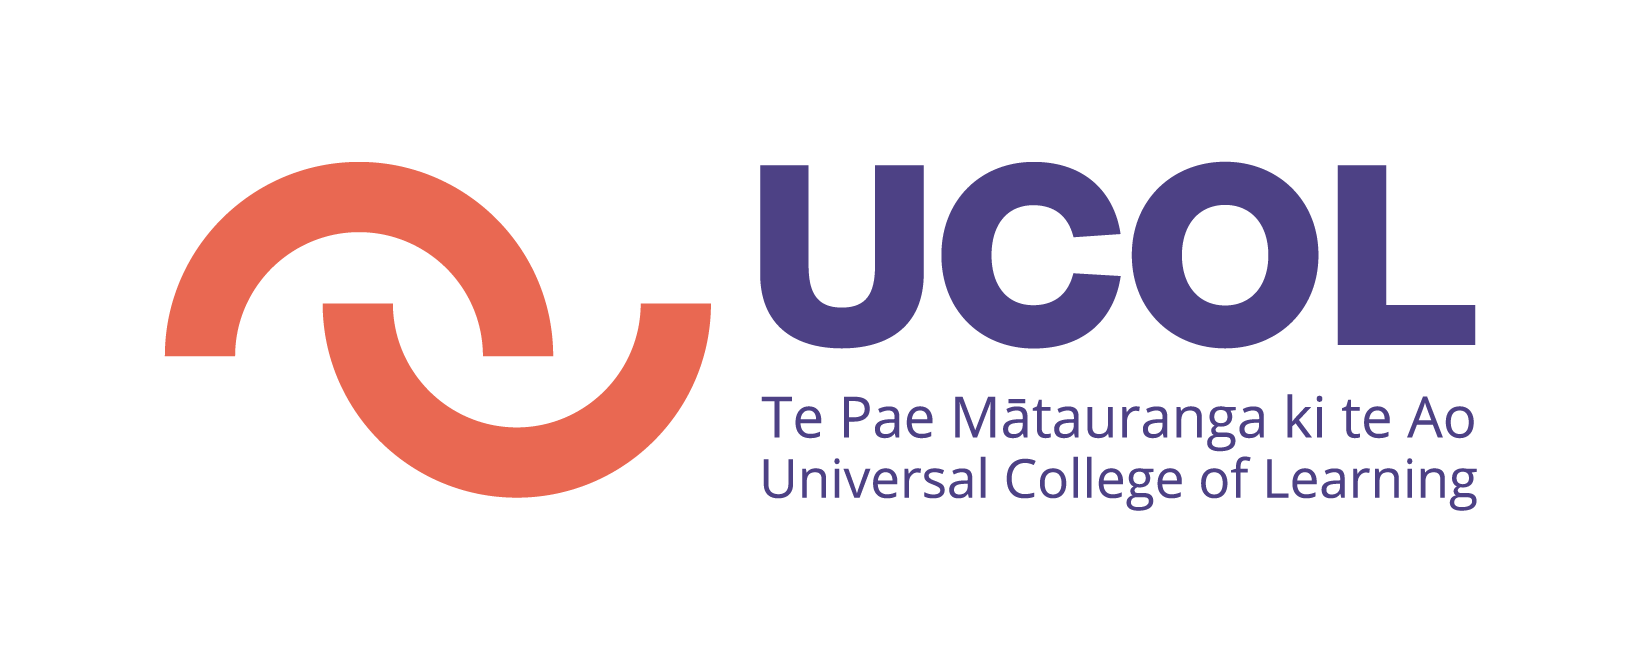 Clinical Lecturer - Nurse Education, Whanganui